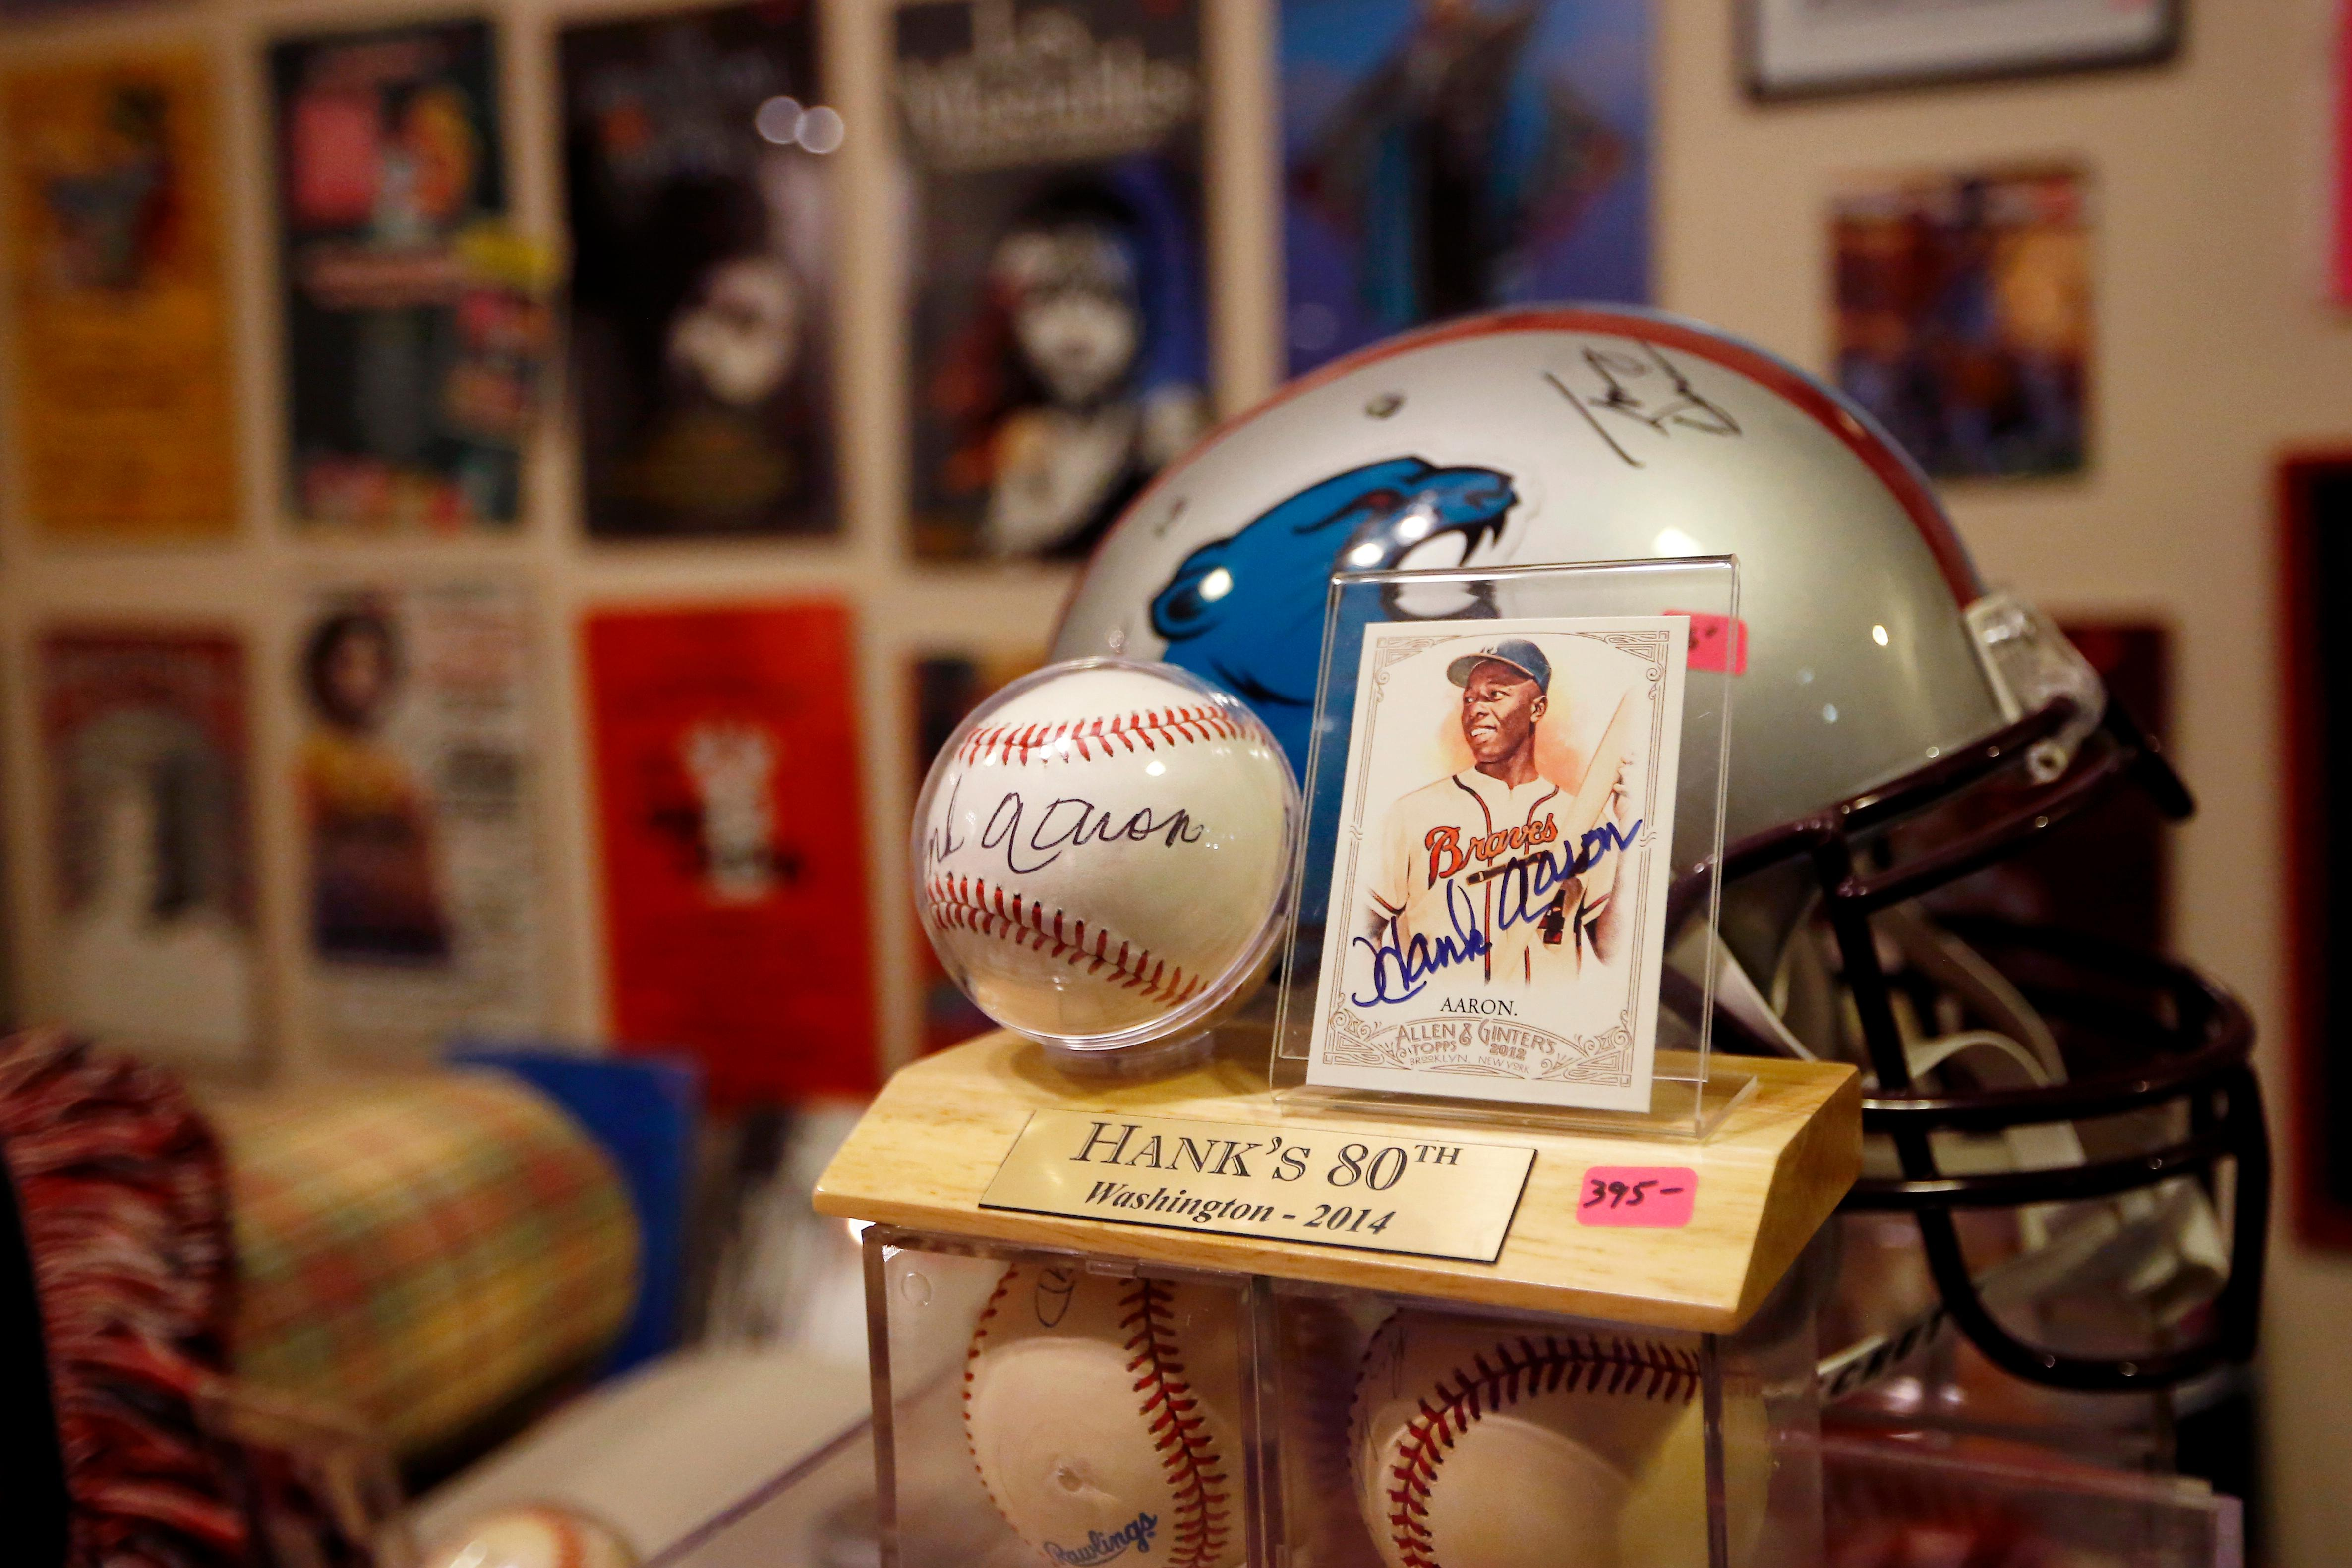 Bob Hope's baseball and trading card signed by Hank Aaron, a baseball player in the Hall of Fame, are marked to sell at $395, Friday, Aug. 23, 2019, in Stone Mountain, Ga. (AP Photo/Andrea Smith)